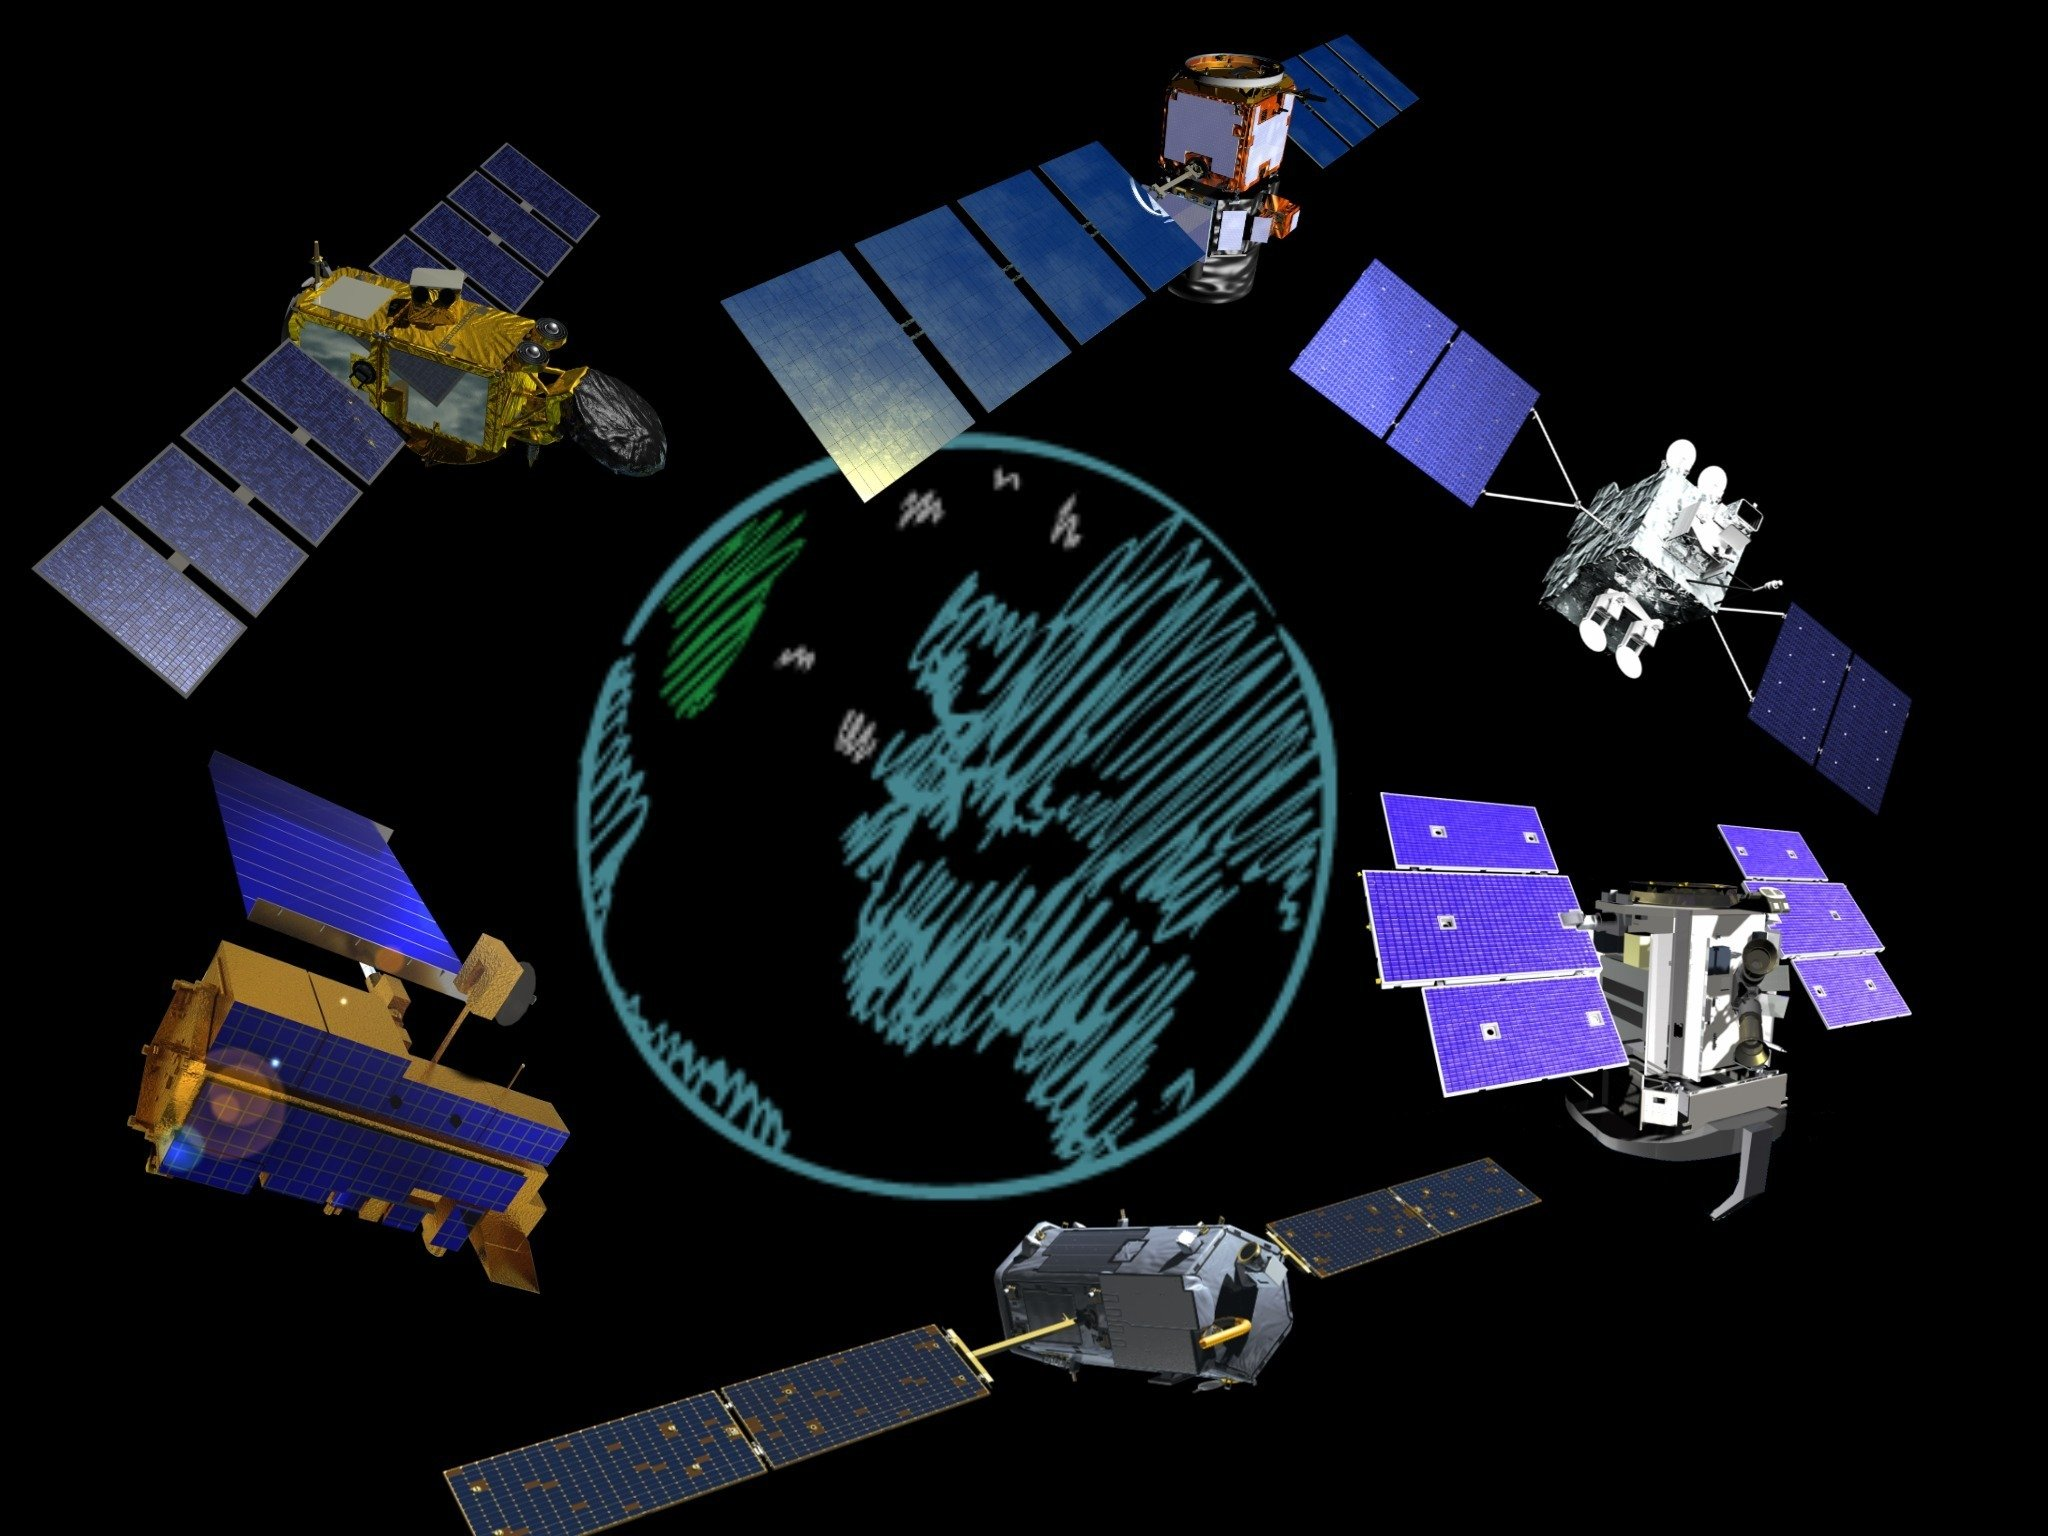 satellites for weather monitoring, search and rescue